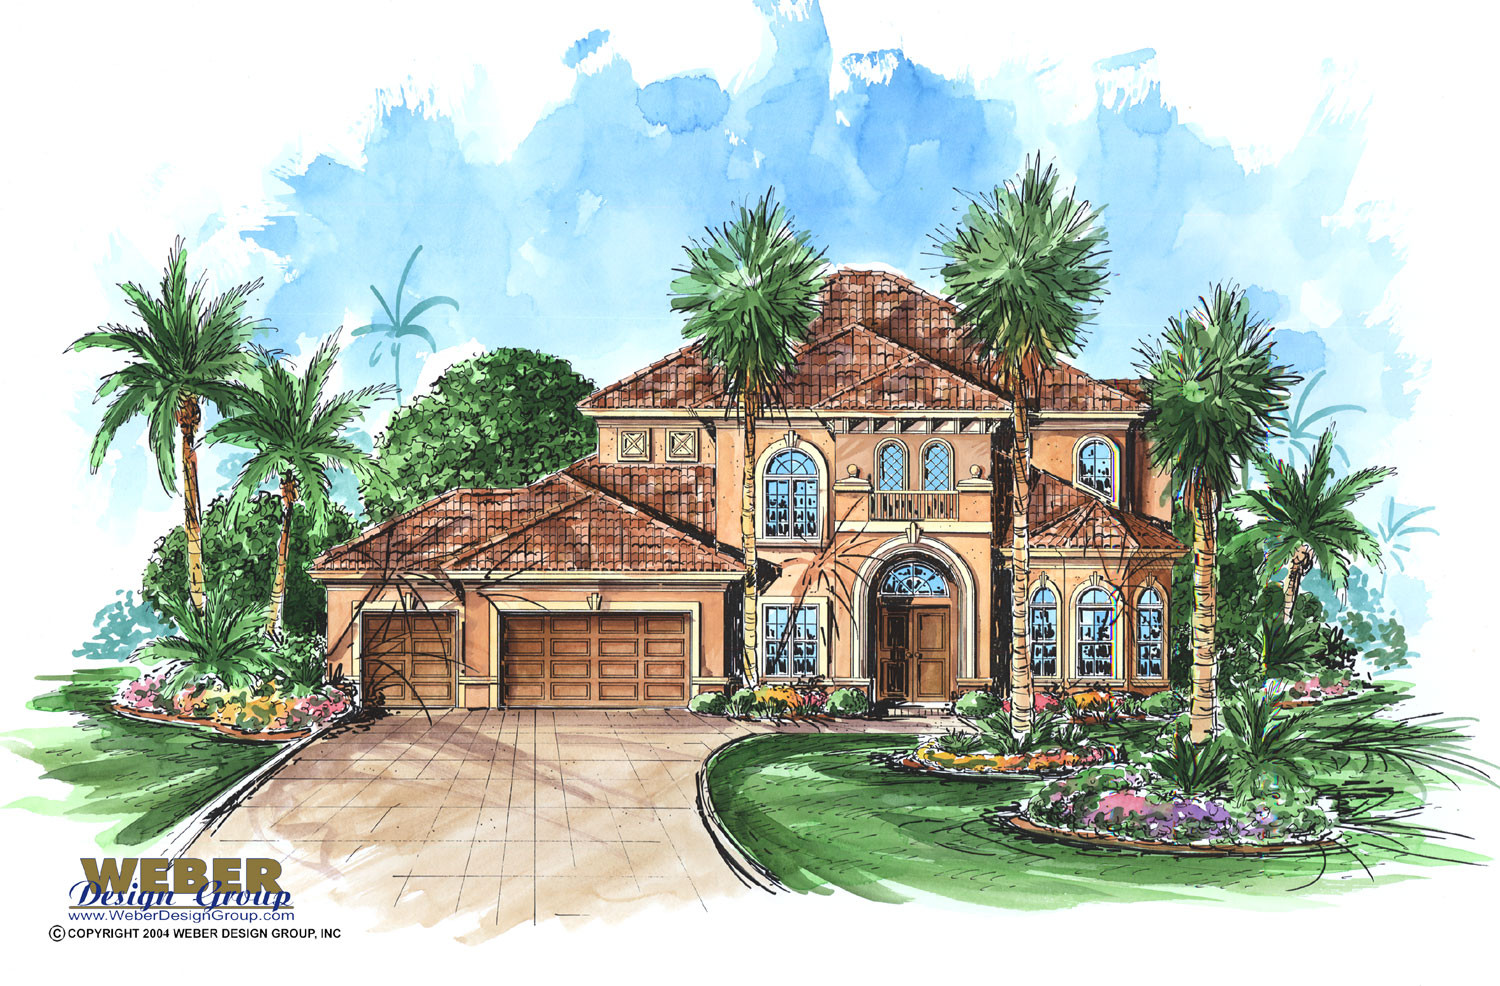 Grand cayman house plan weber design group for Weber design